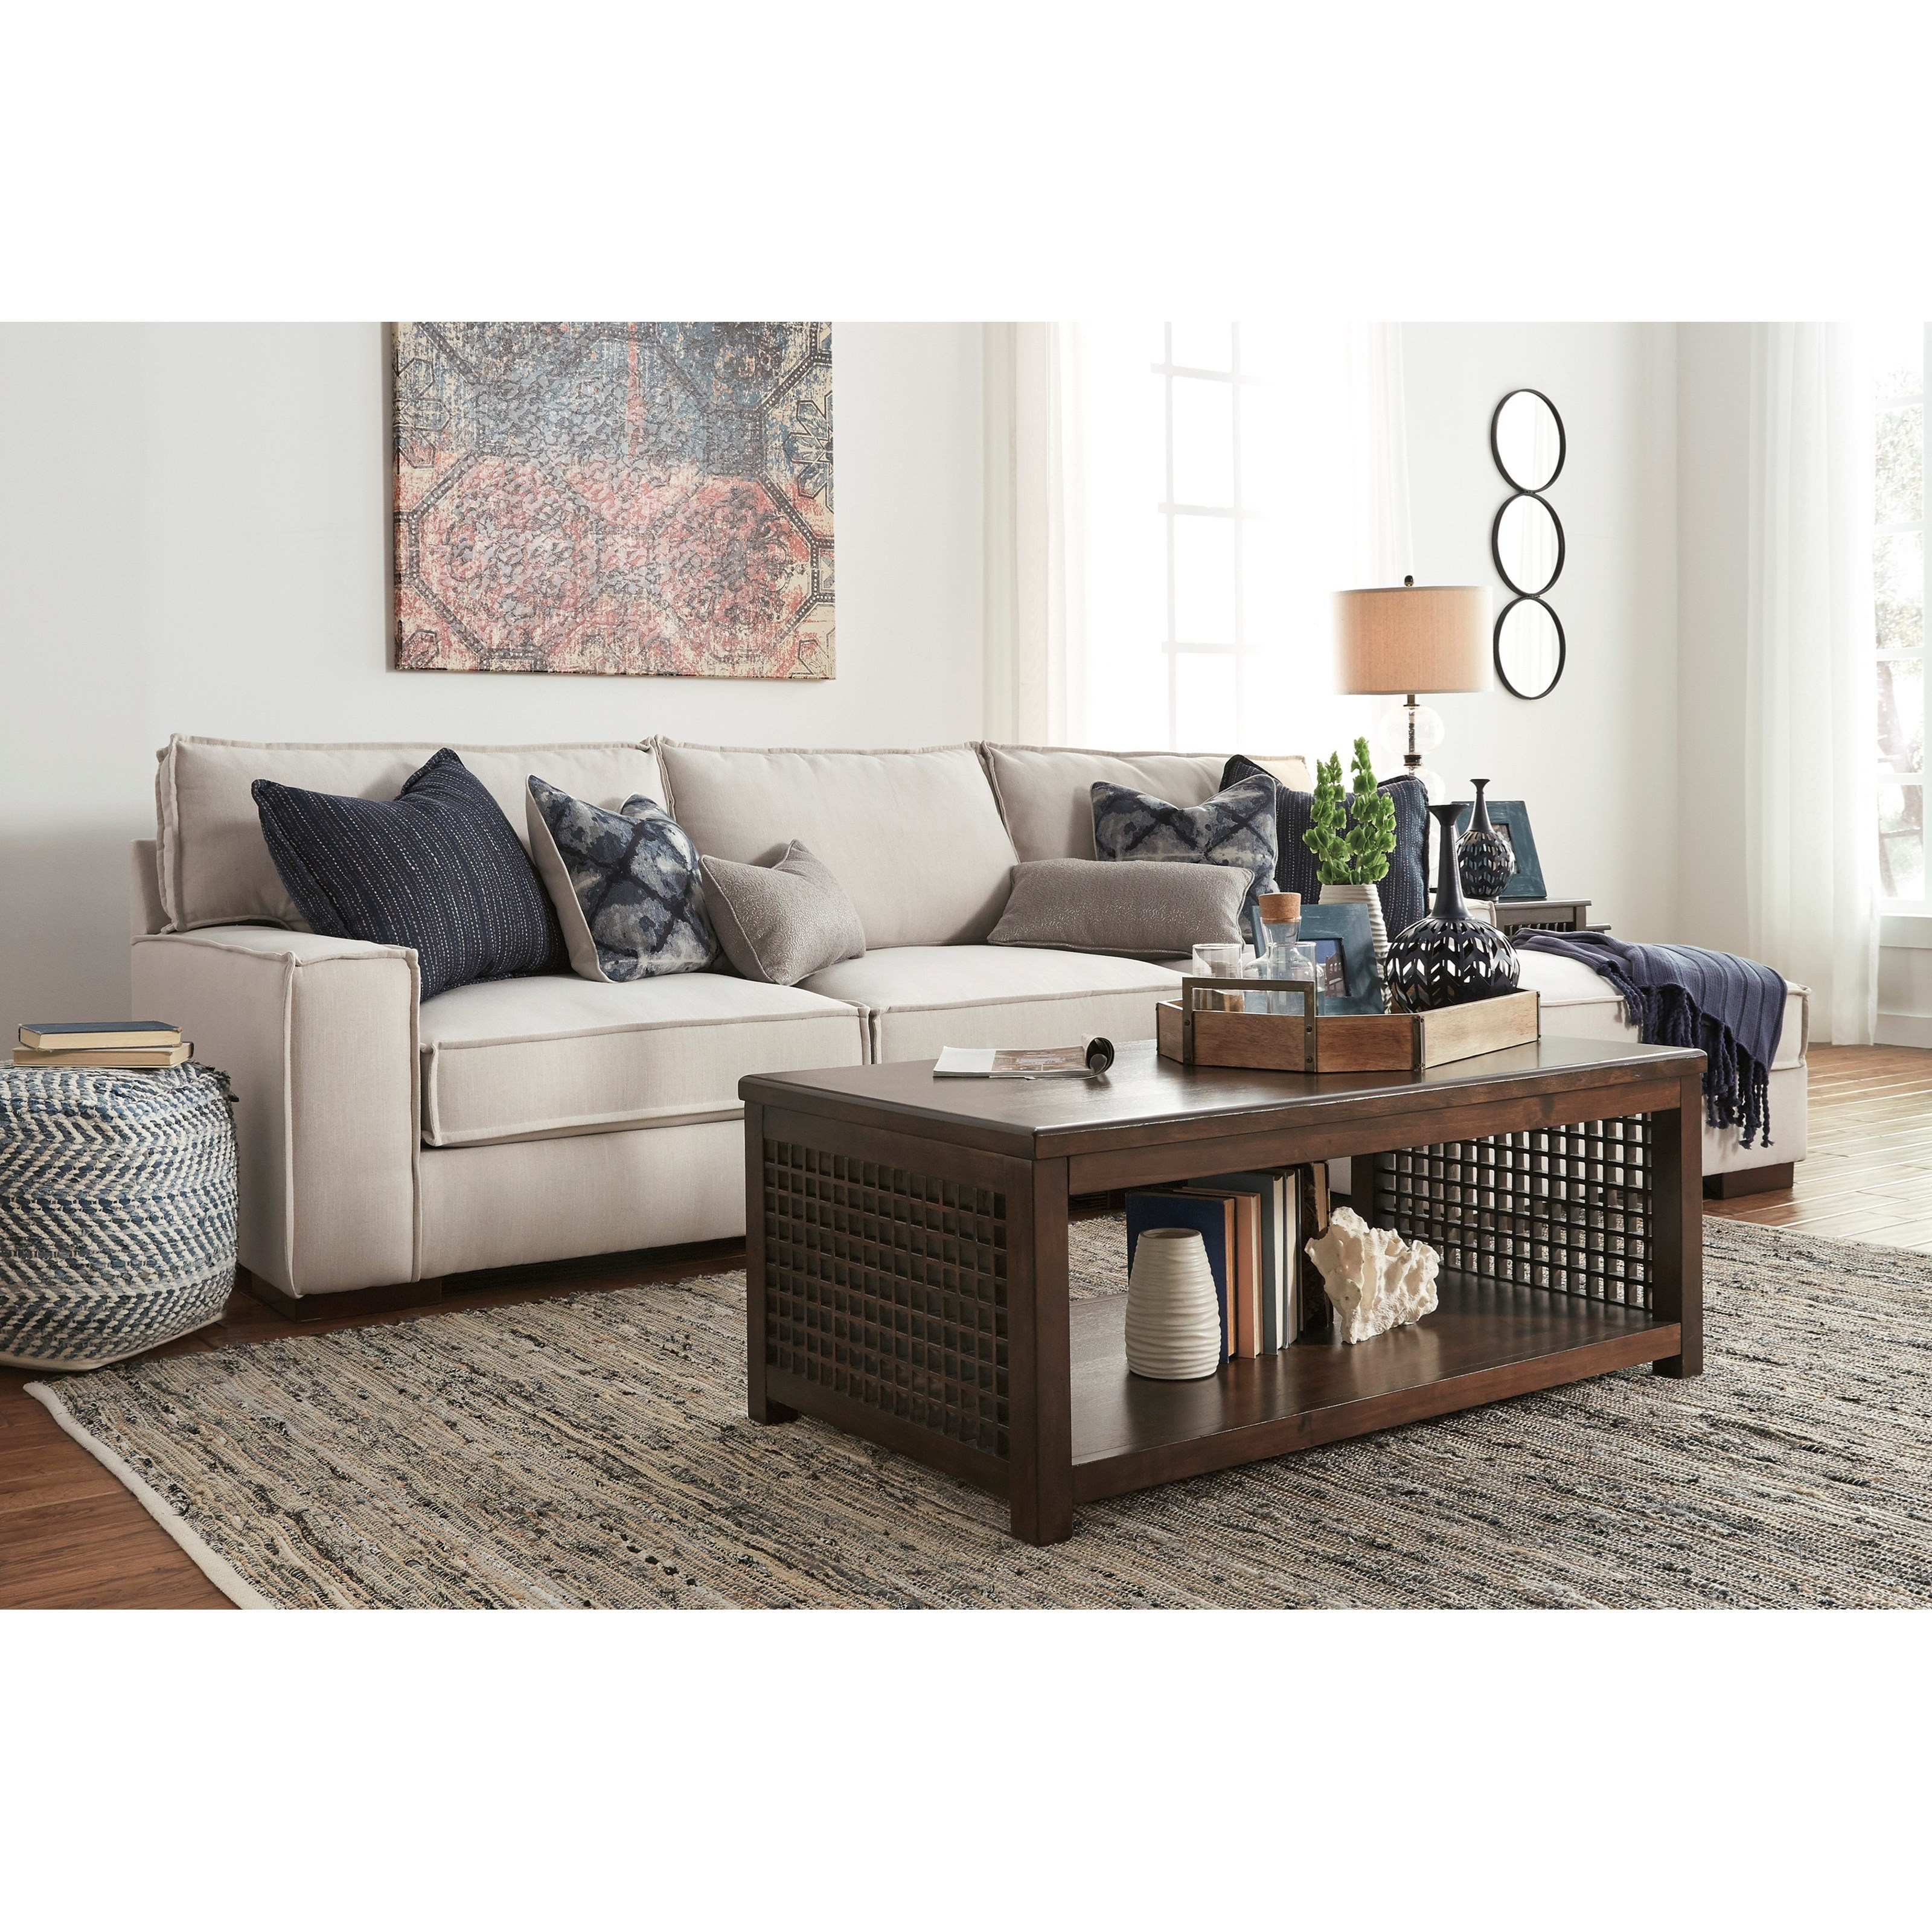 Signature Design By Ashley Kendleton Modern 2 Piece Sectional With Right Chaise And Ultraplush